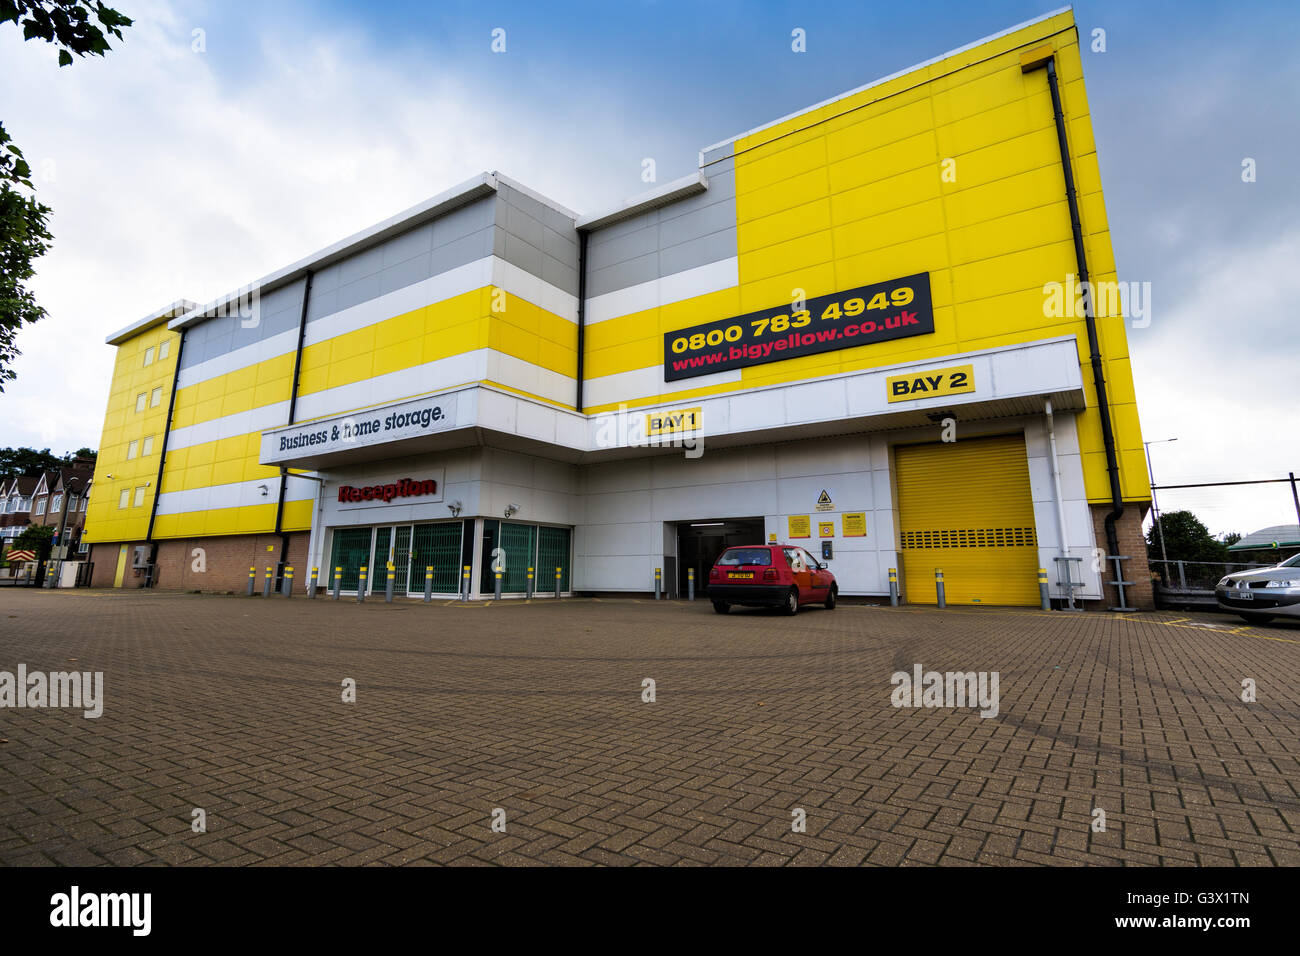 Shot of the front of a typical Big Yellow Storage facility. - Stock Image